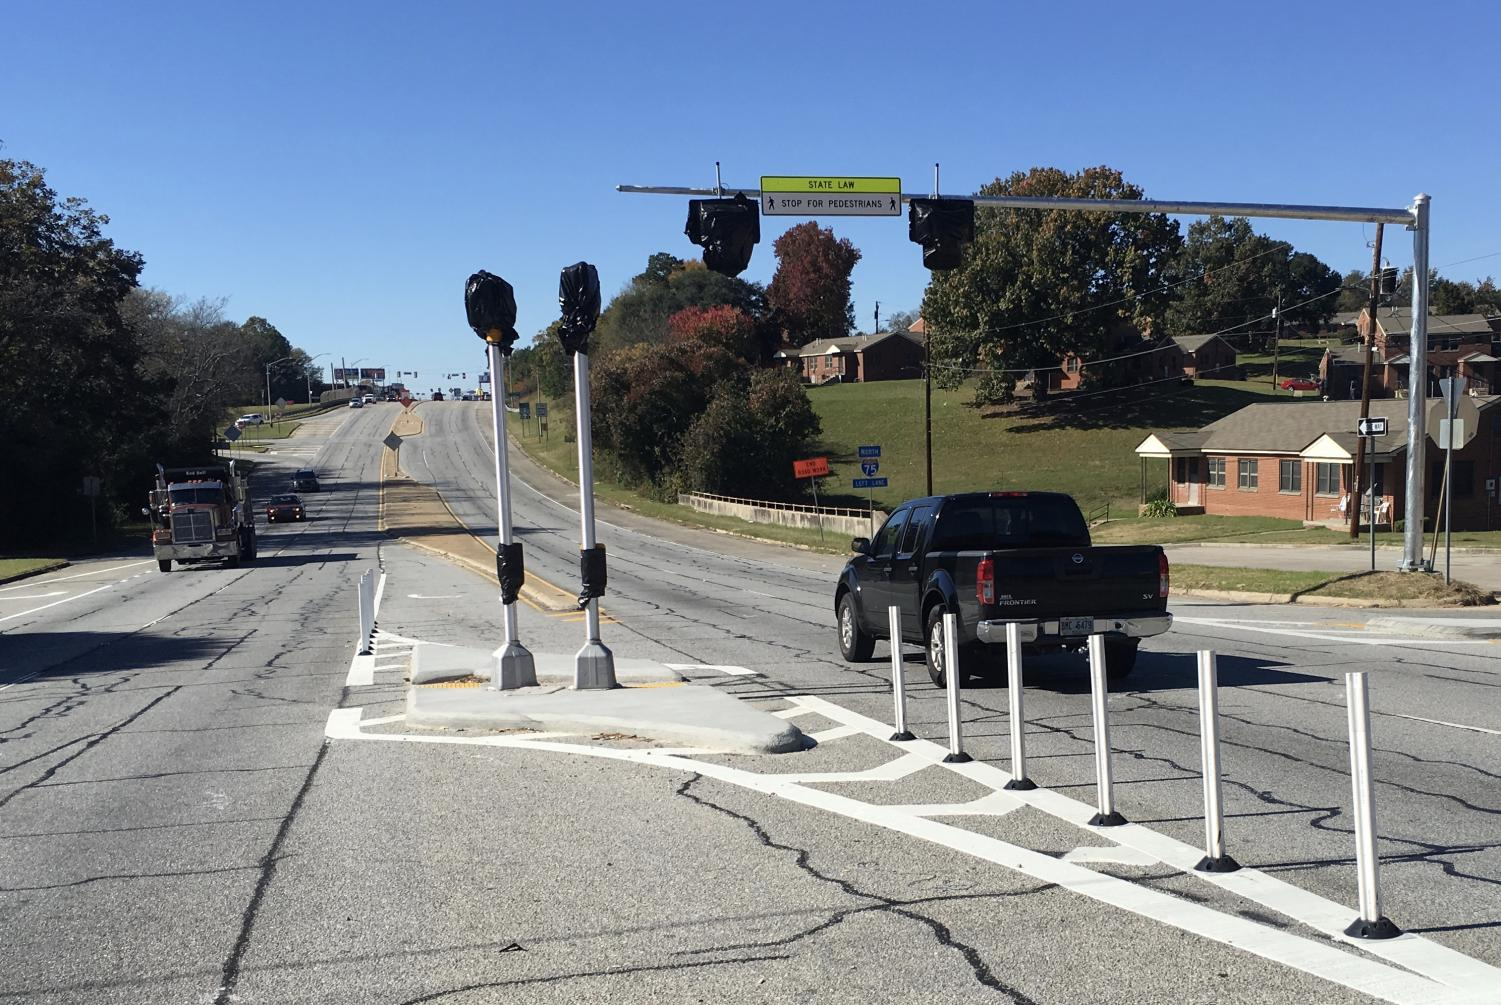 A new Pedestrian Hybrid Beacon system awaits activation after the Georgia Department of Transportation installed the safety equipment on Eisenhower Parkway at C Street where a child was hit trying to cross the street in 2010.